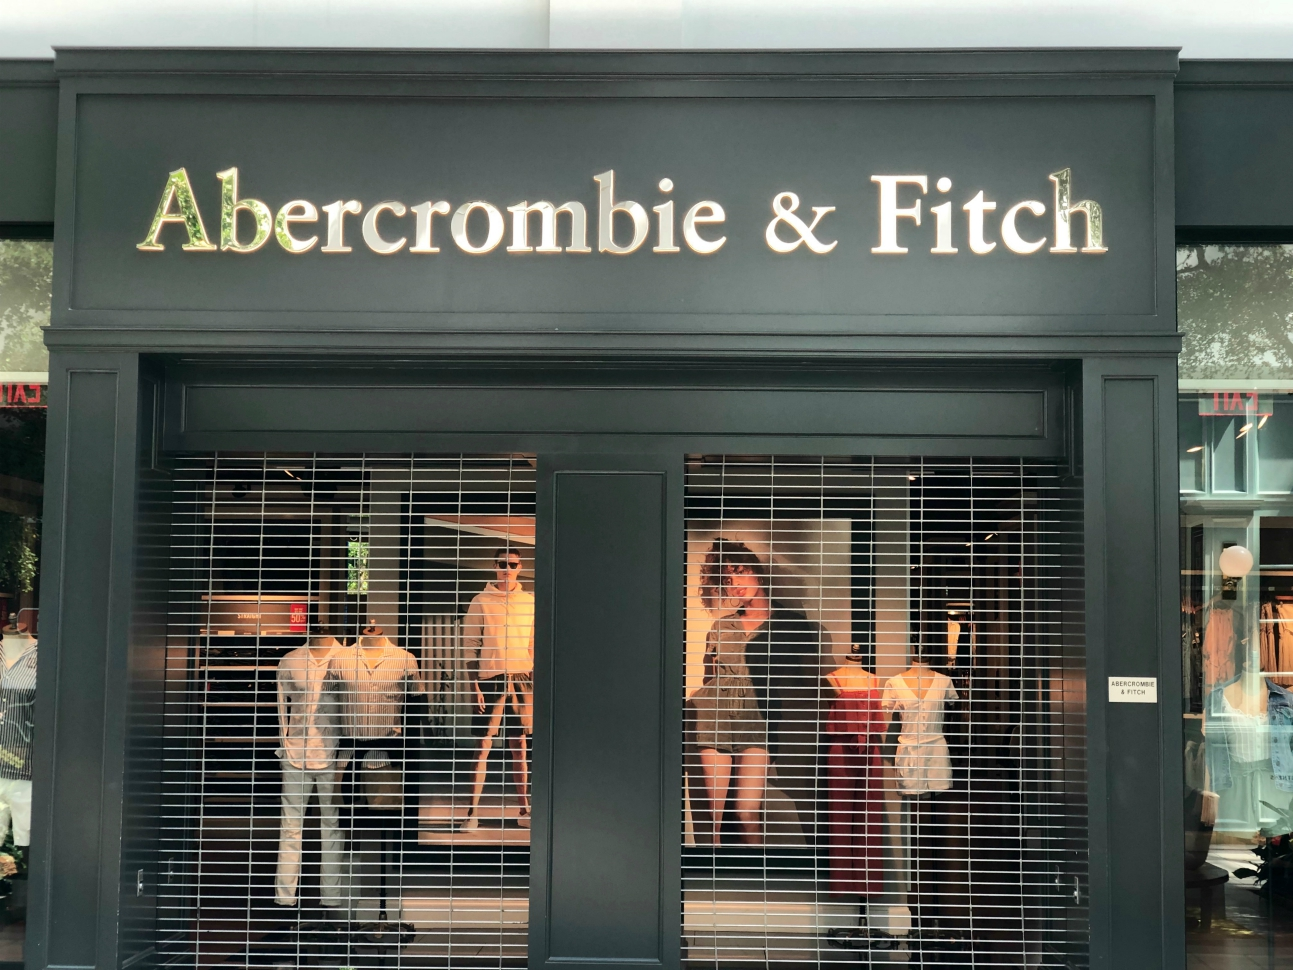 A&F and Hollister are reopening stores, and parent company Abercrombie sees customers in U.S., EMEA returning at quicker pace than China.